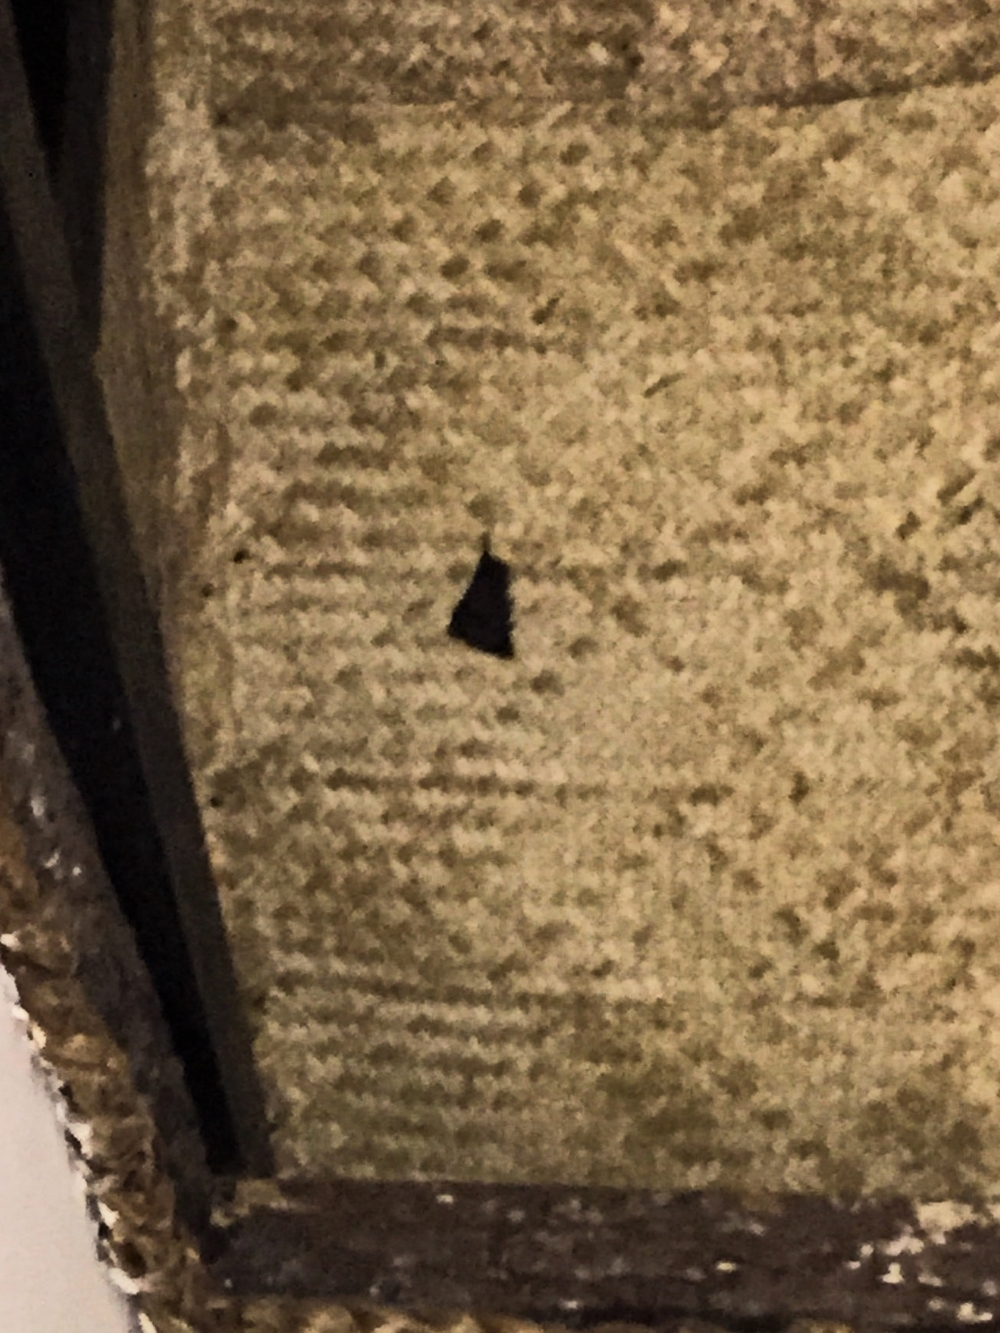 A friendly black bat keeping me company in my room.